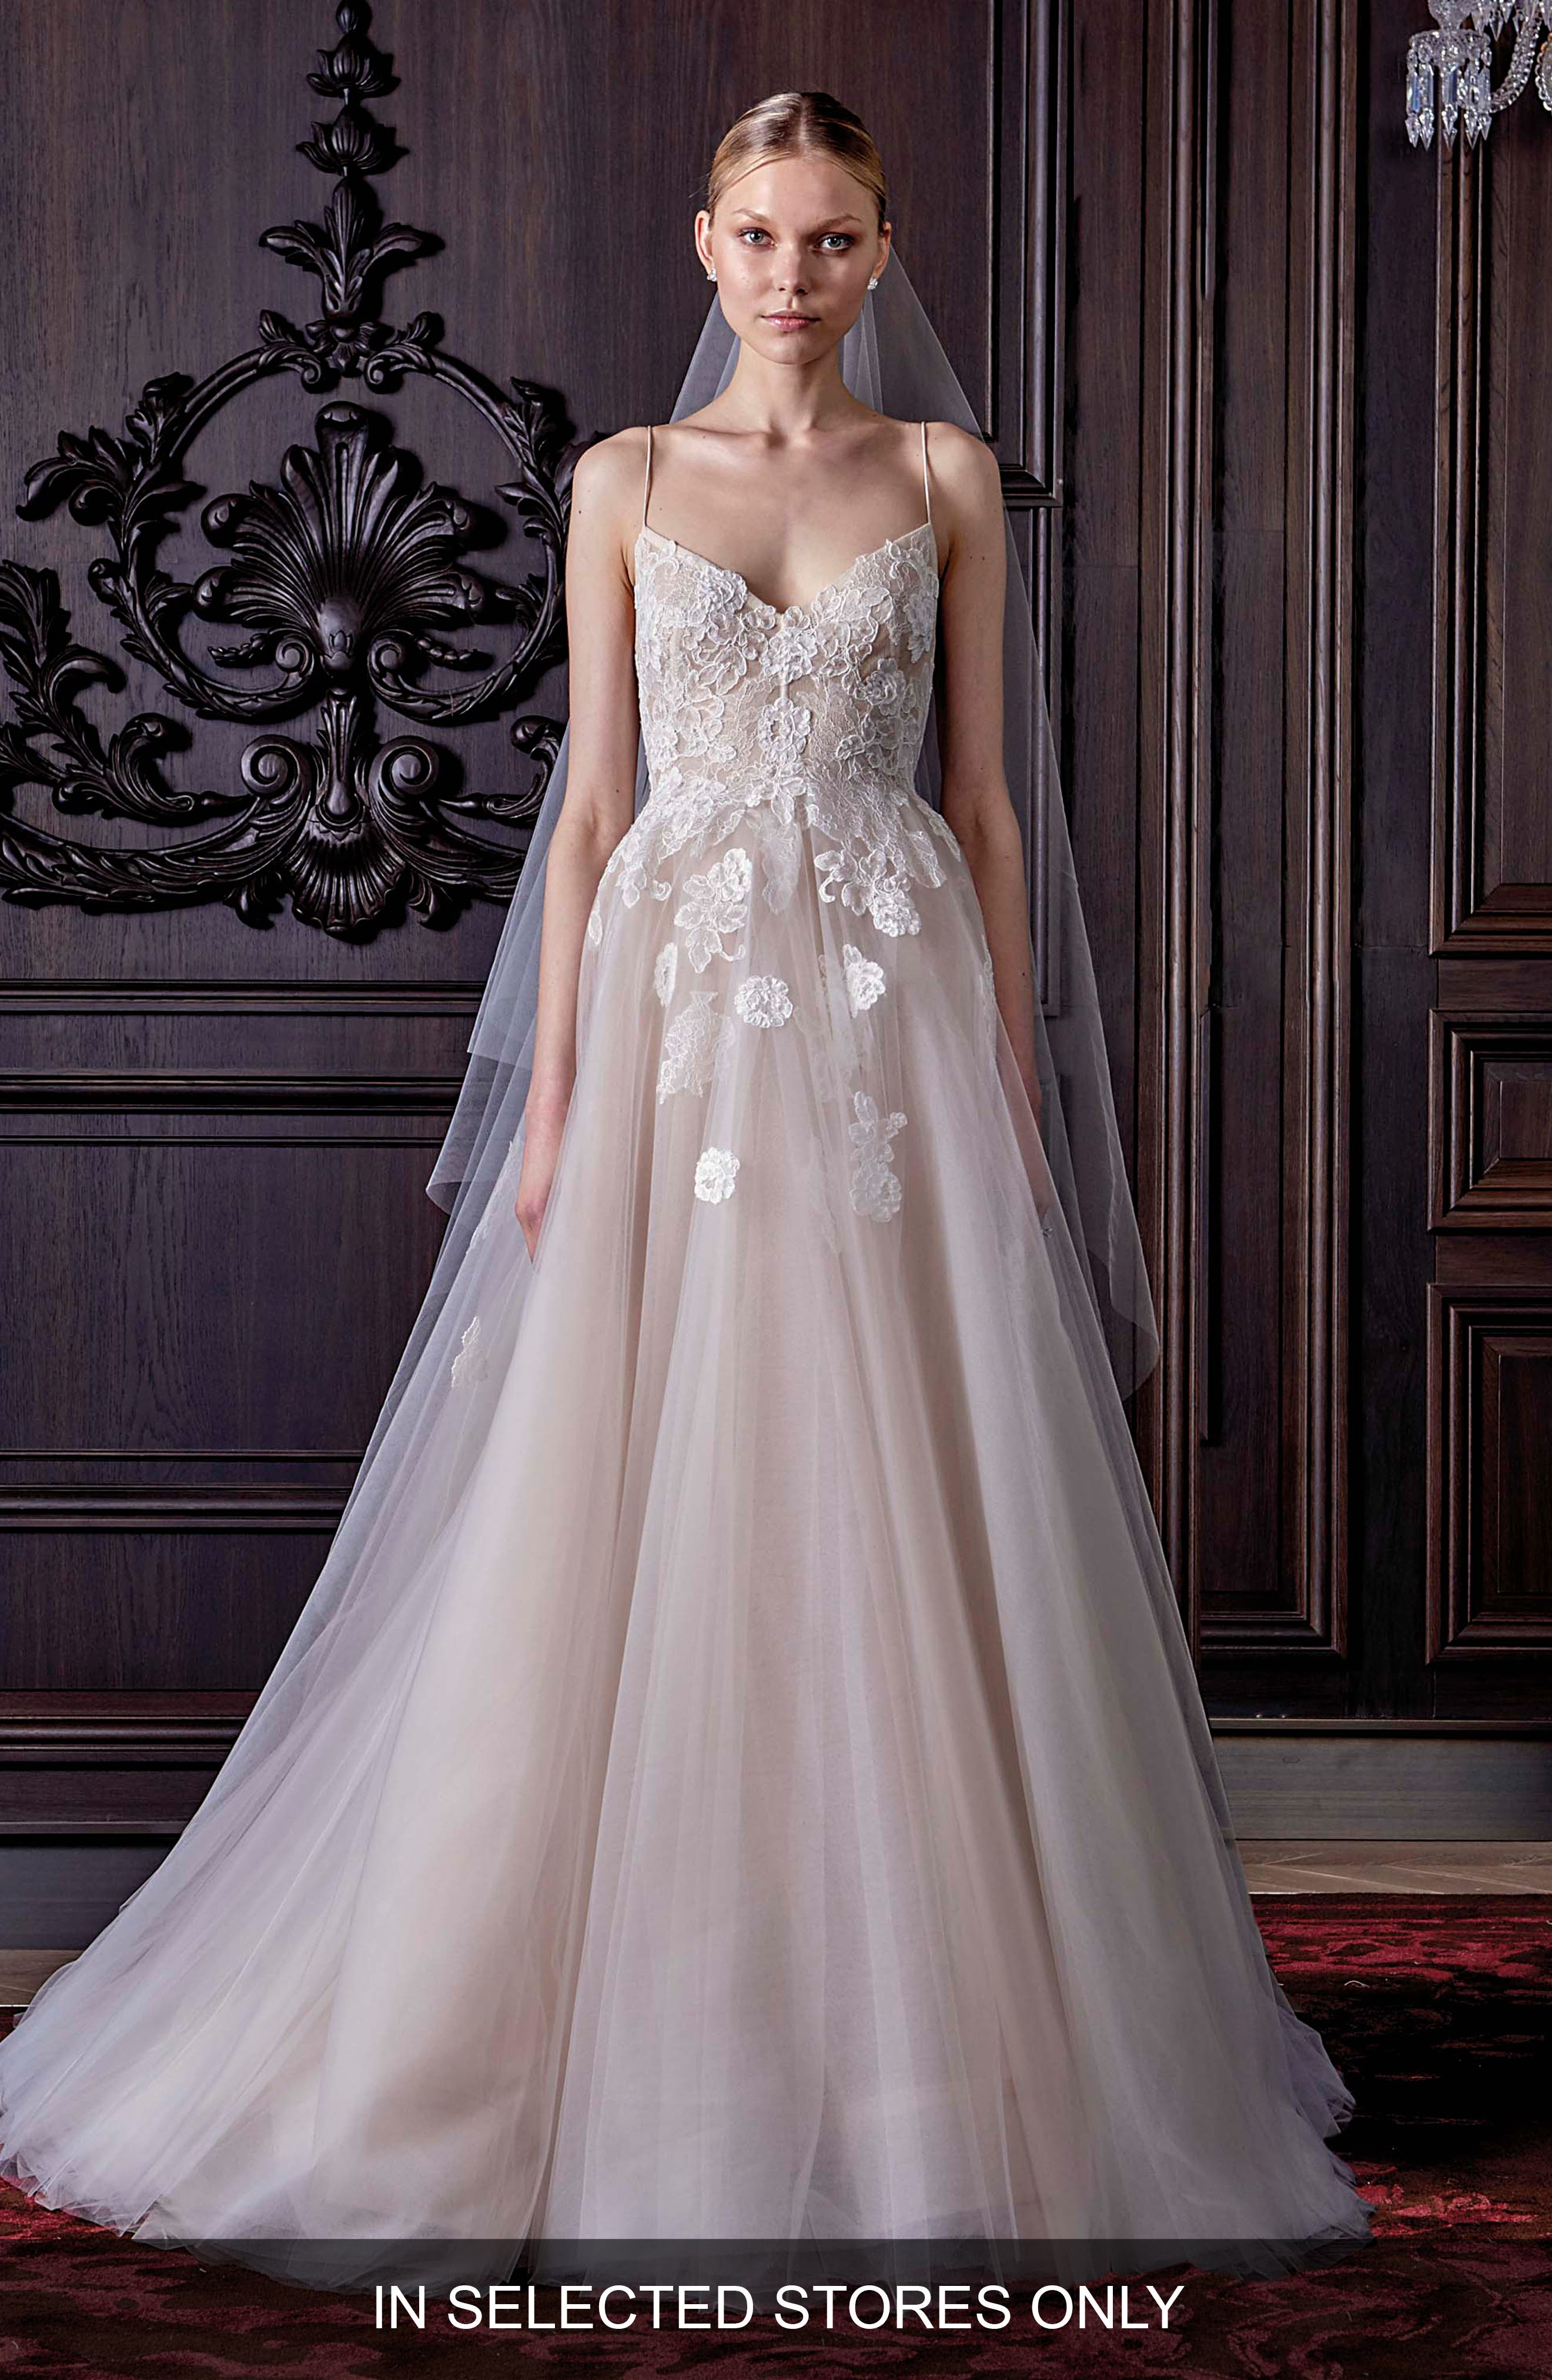 Alternate Image 1 Selected - Monique Lhuillier Severine Chantilly Lace & Tulle Gown